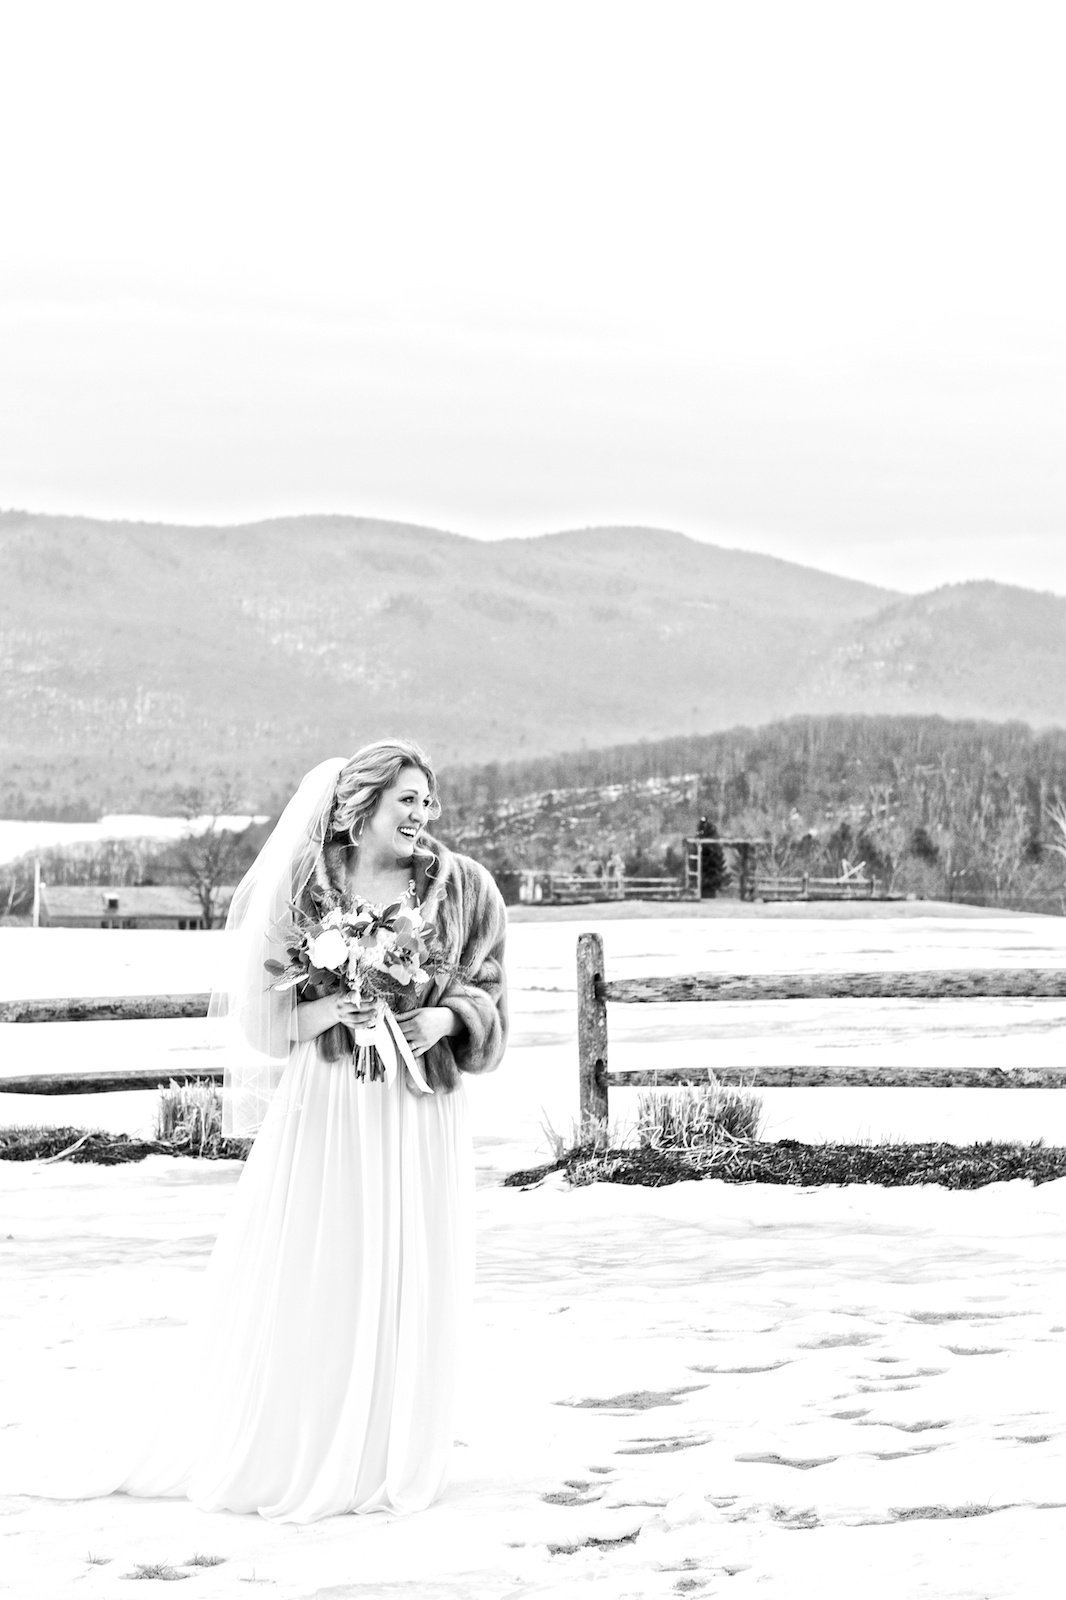 find best Vermont photographer for candid winter wedding in Chittenden, Rutland and Killington 1